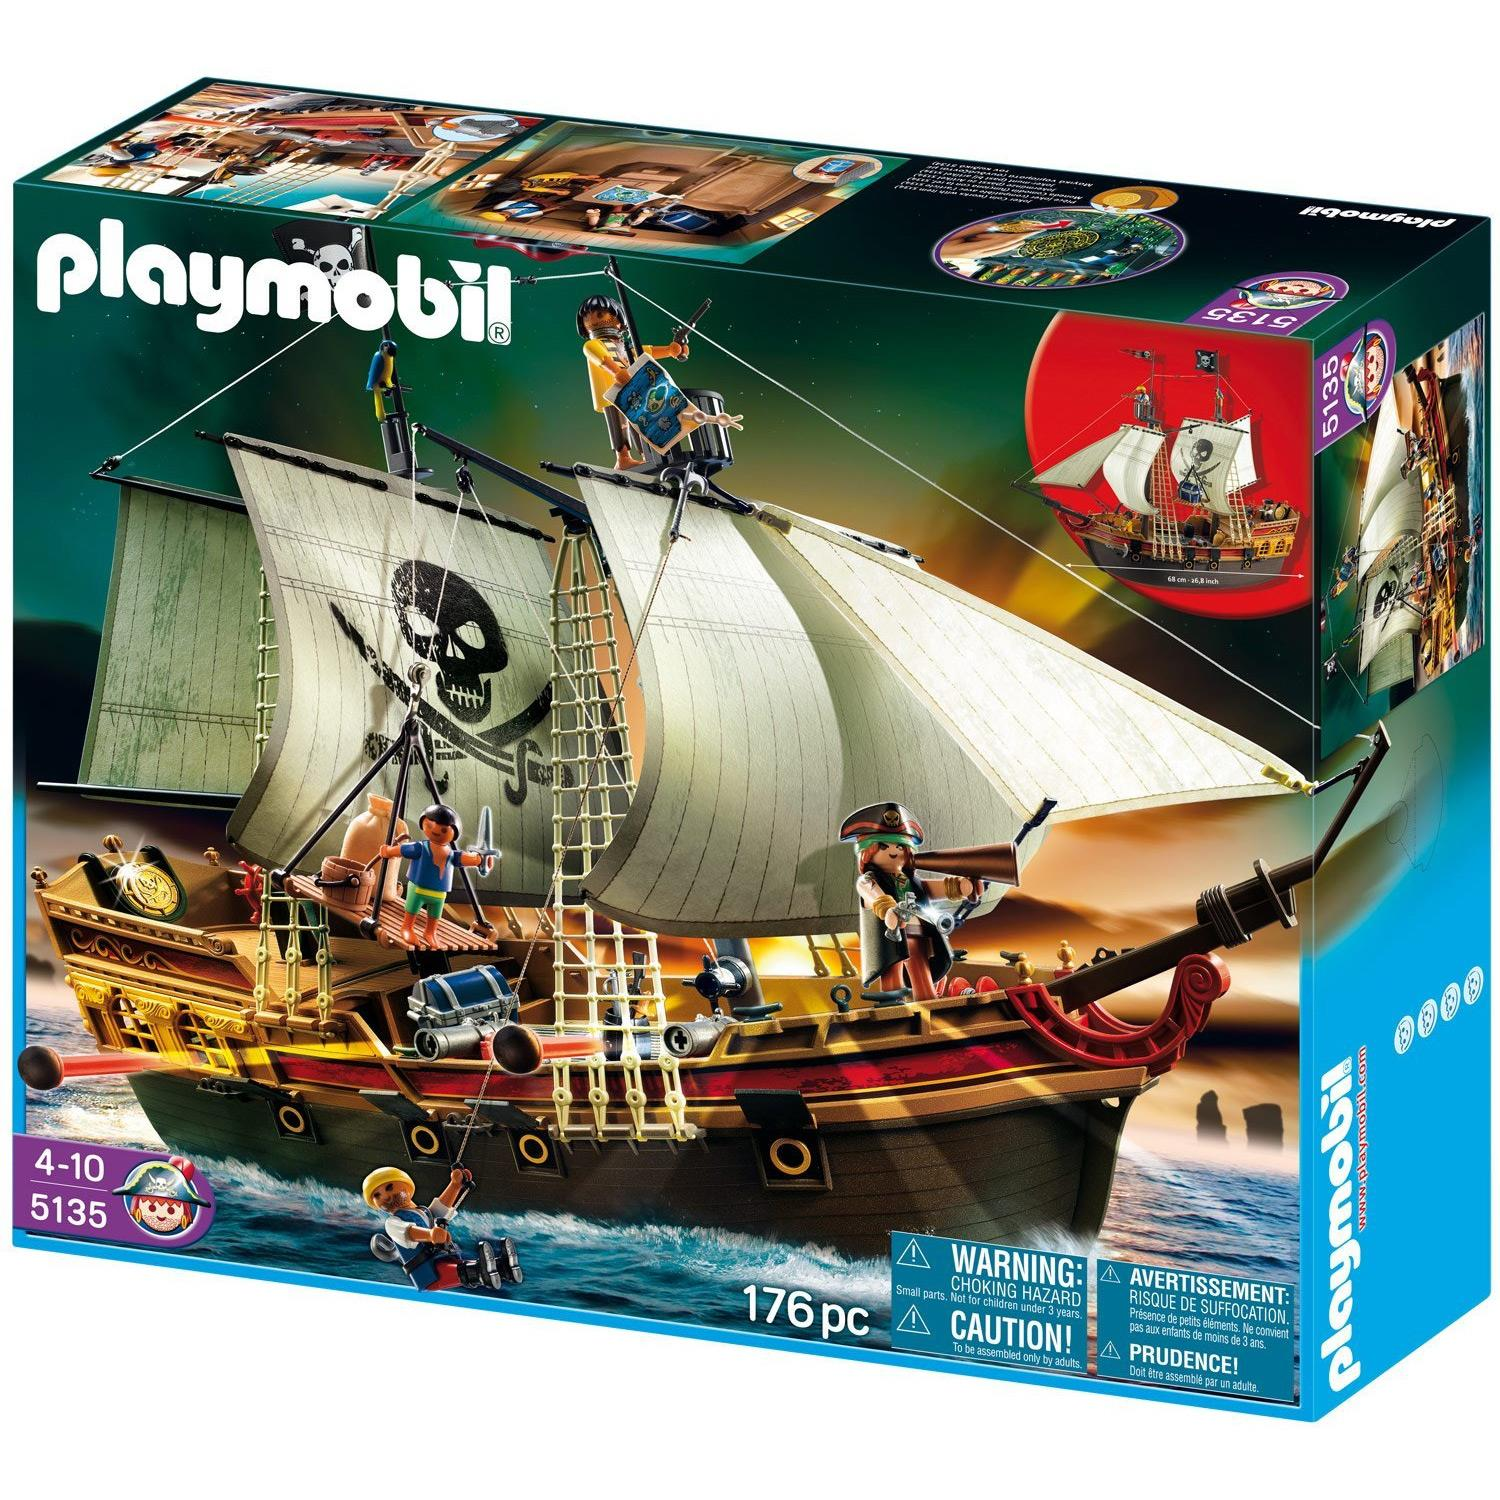 Piraci Playmobil